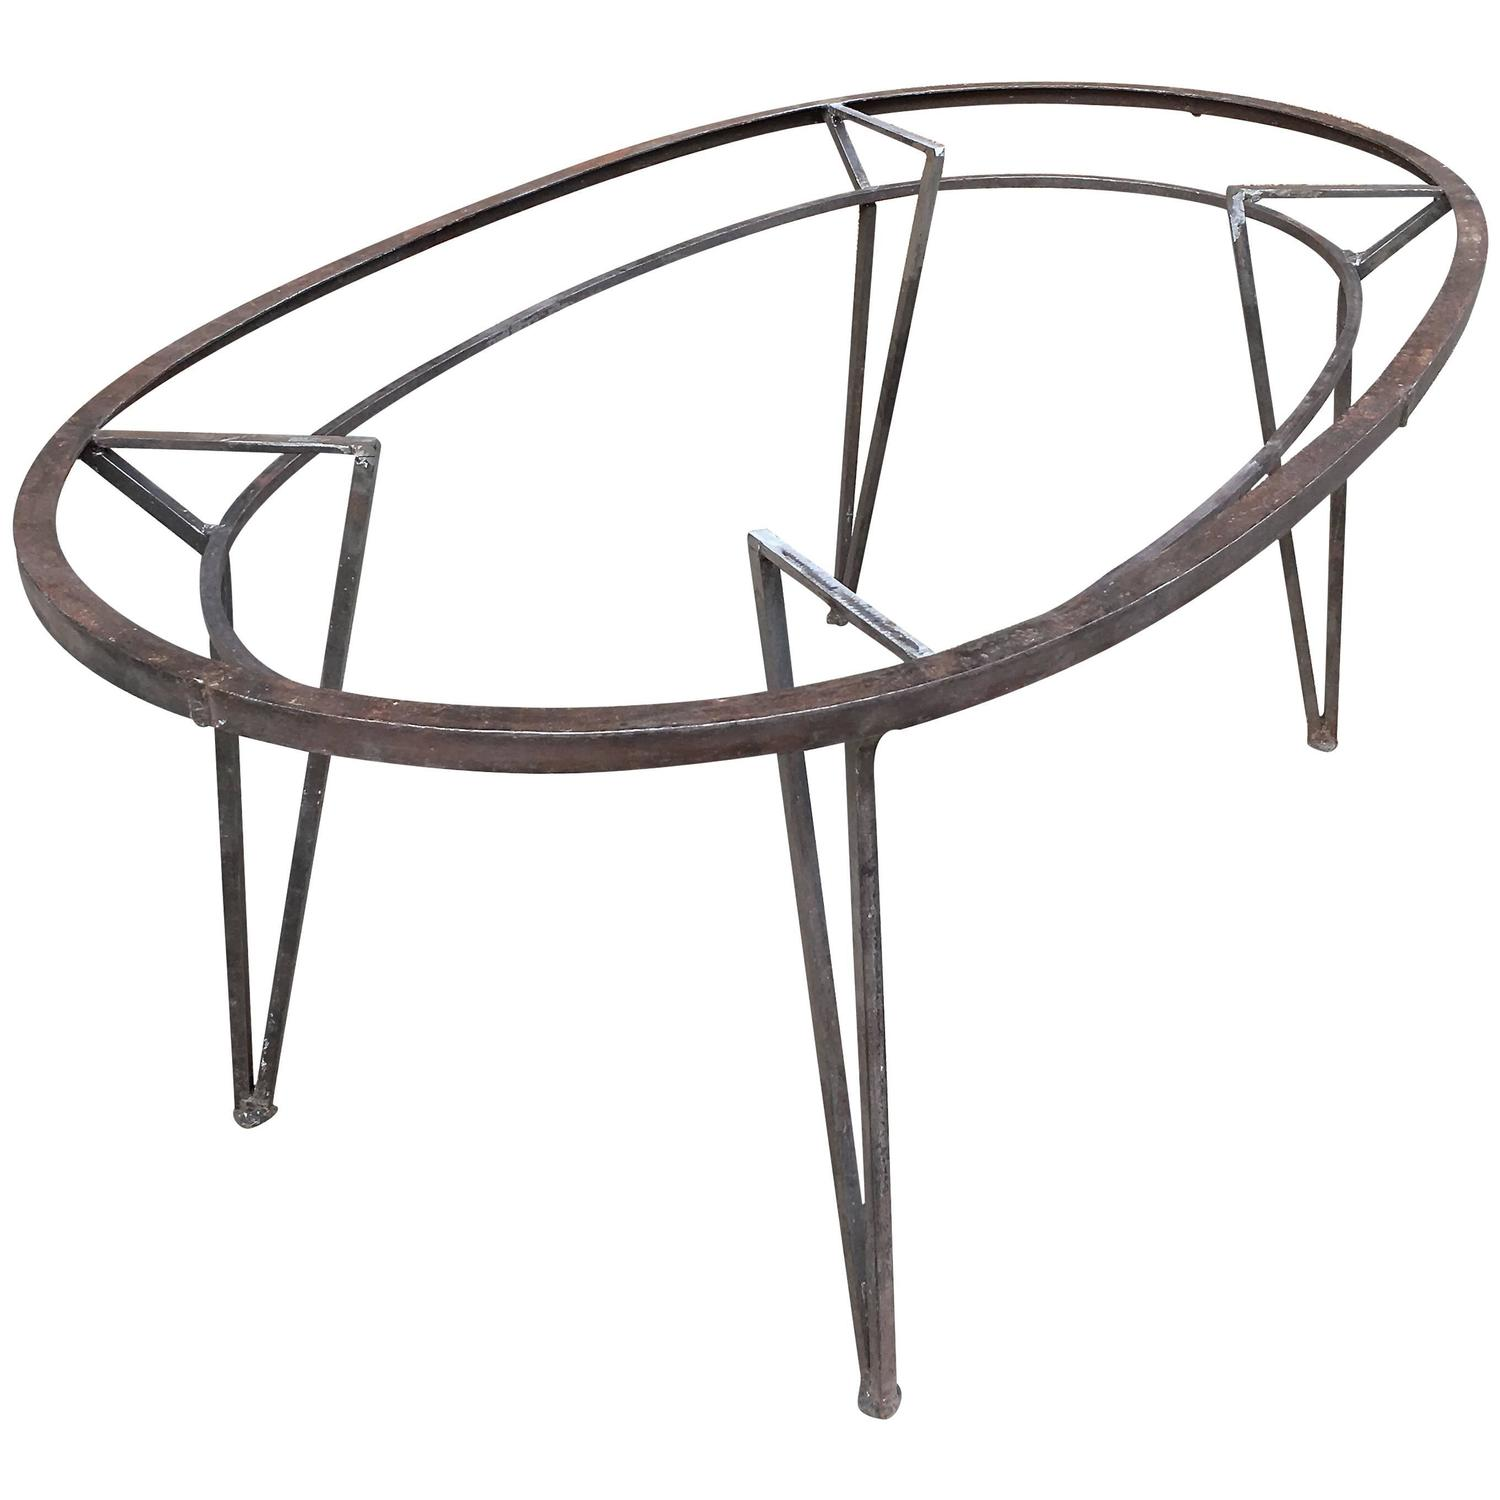 Brushed Steel Oval Outdoor Patio Dining Table For Sale At 1stdibs